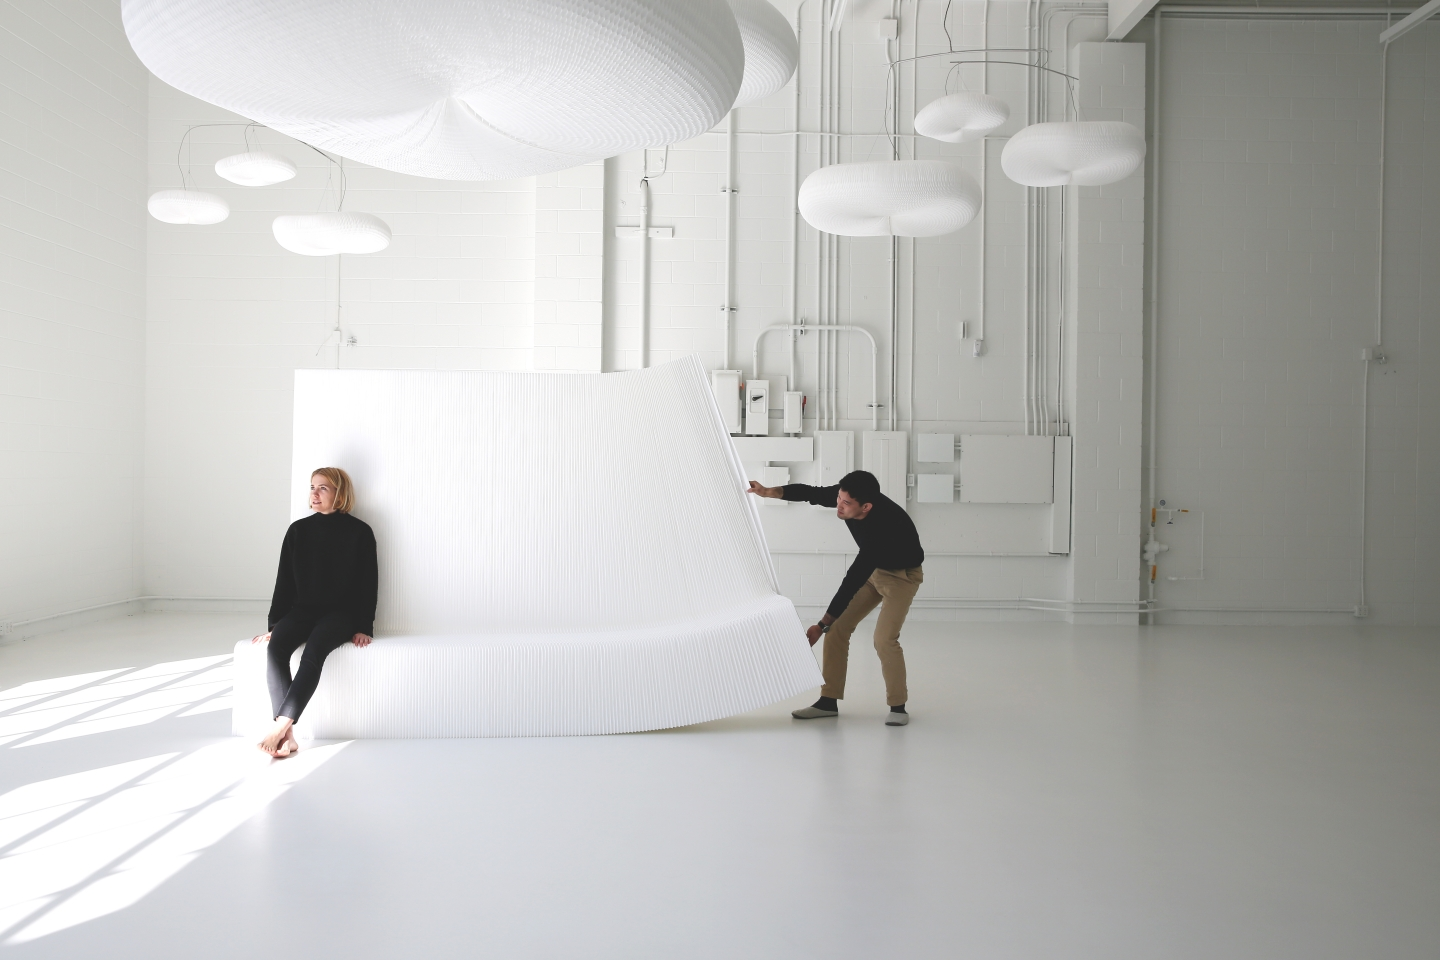 stretching open a white textile benchwall underneath a canopy of cloud mobiles